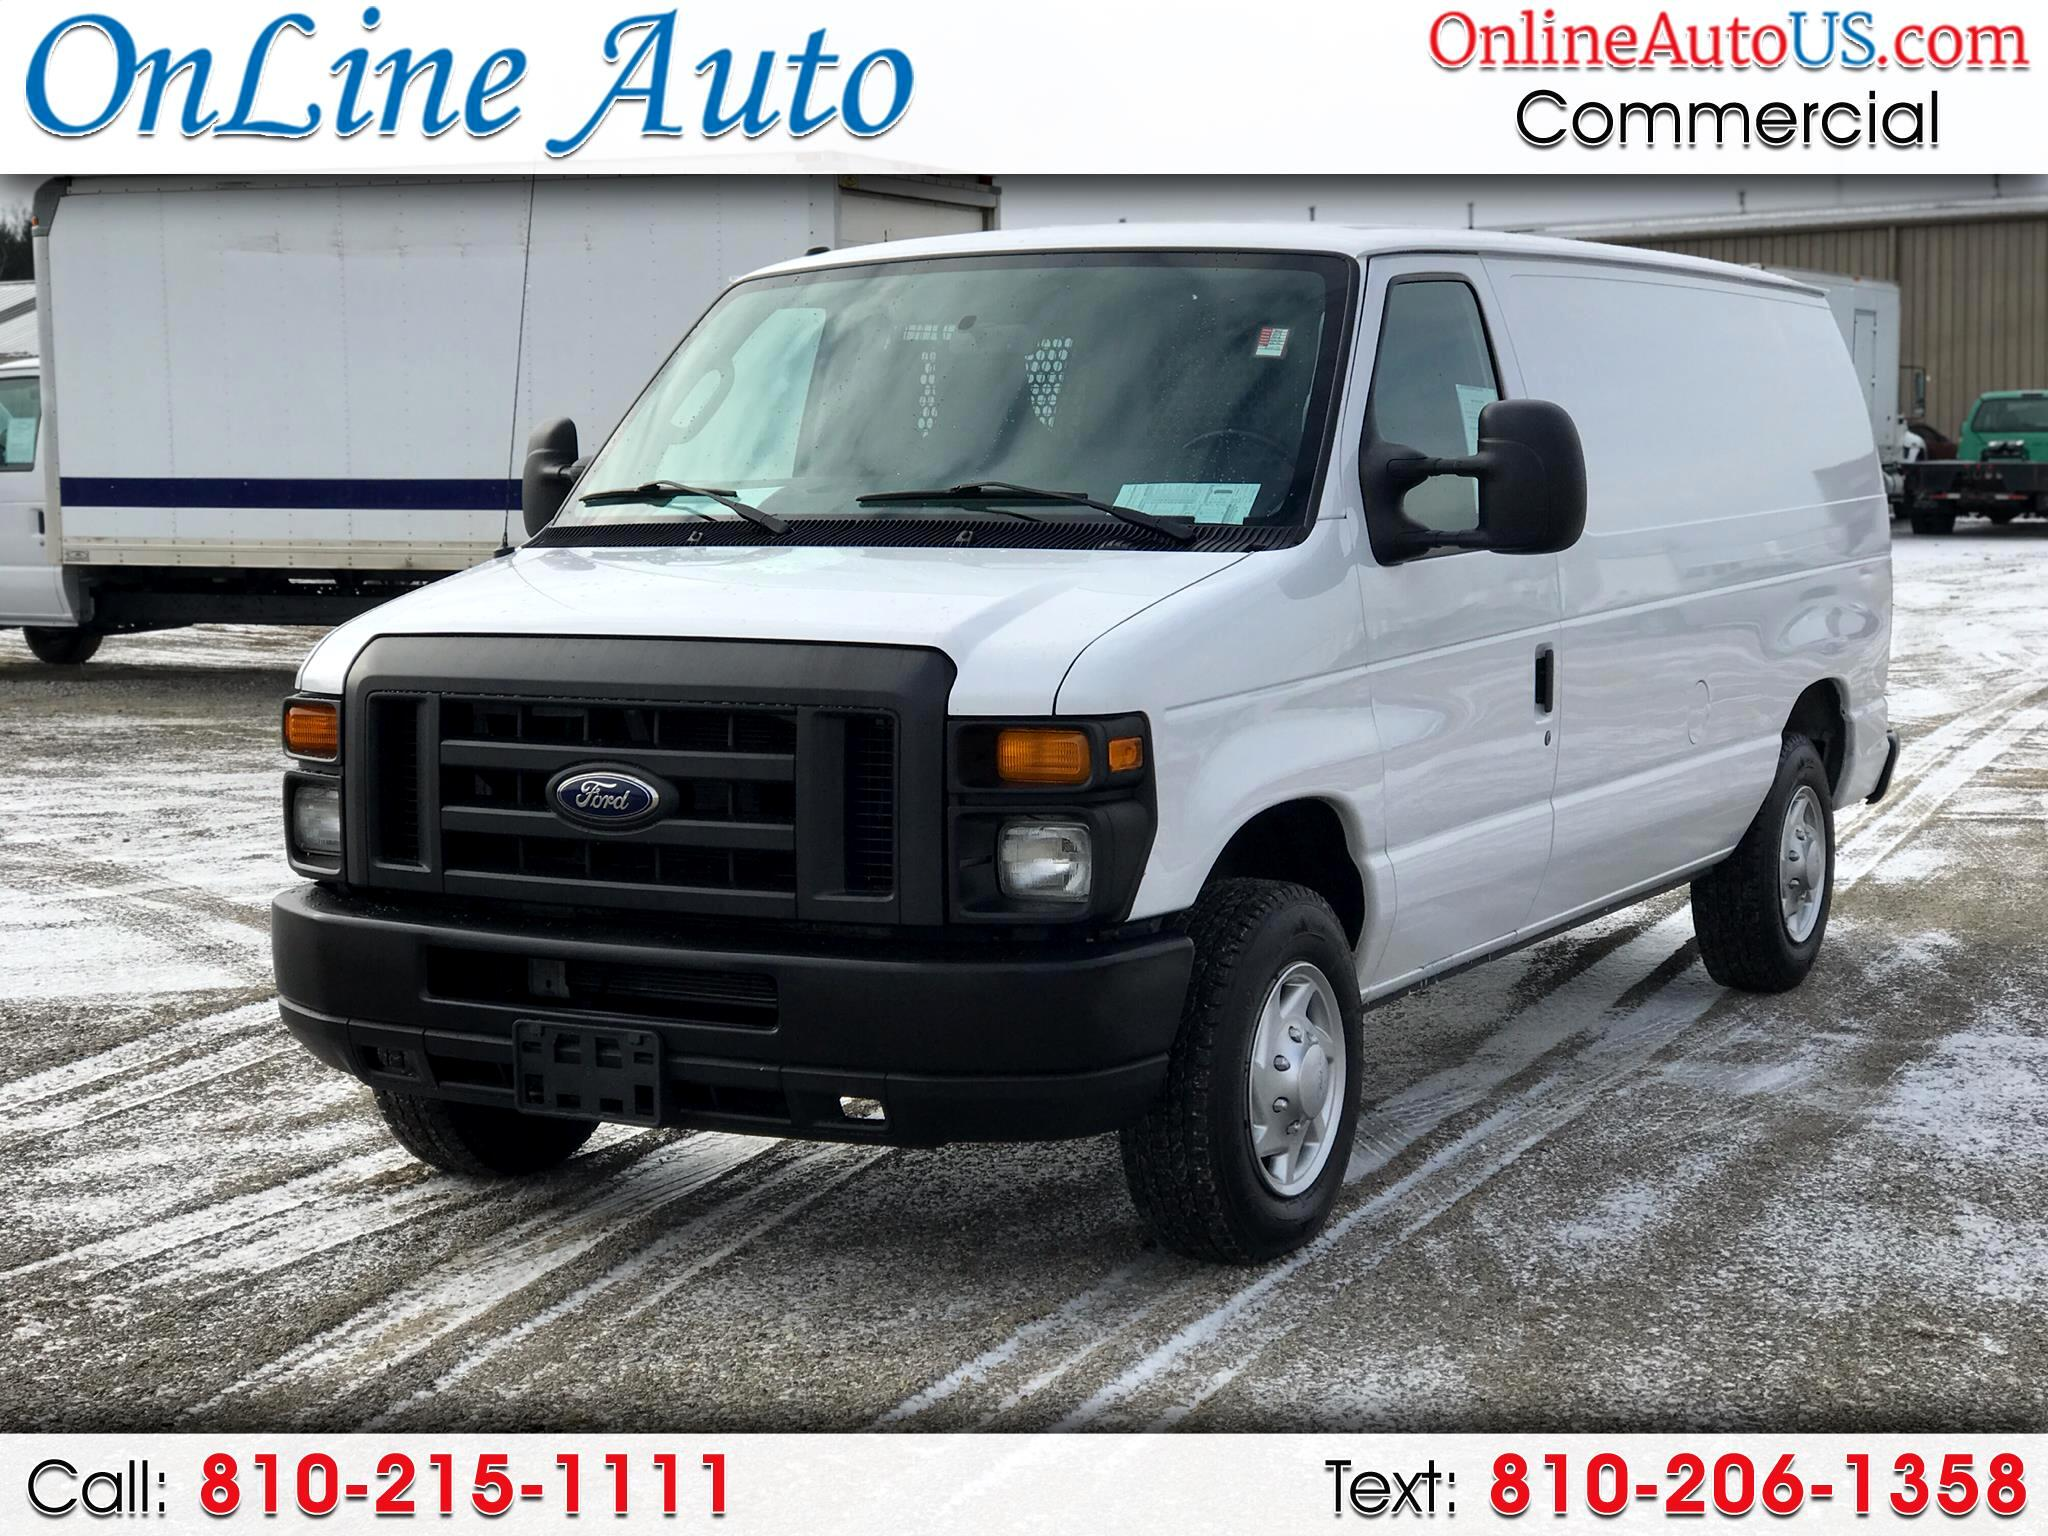 2014 Ford Econoline E-150 REGULAR LENGTH CARGO VAN